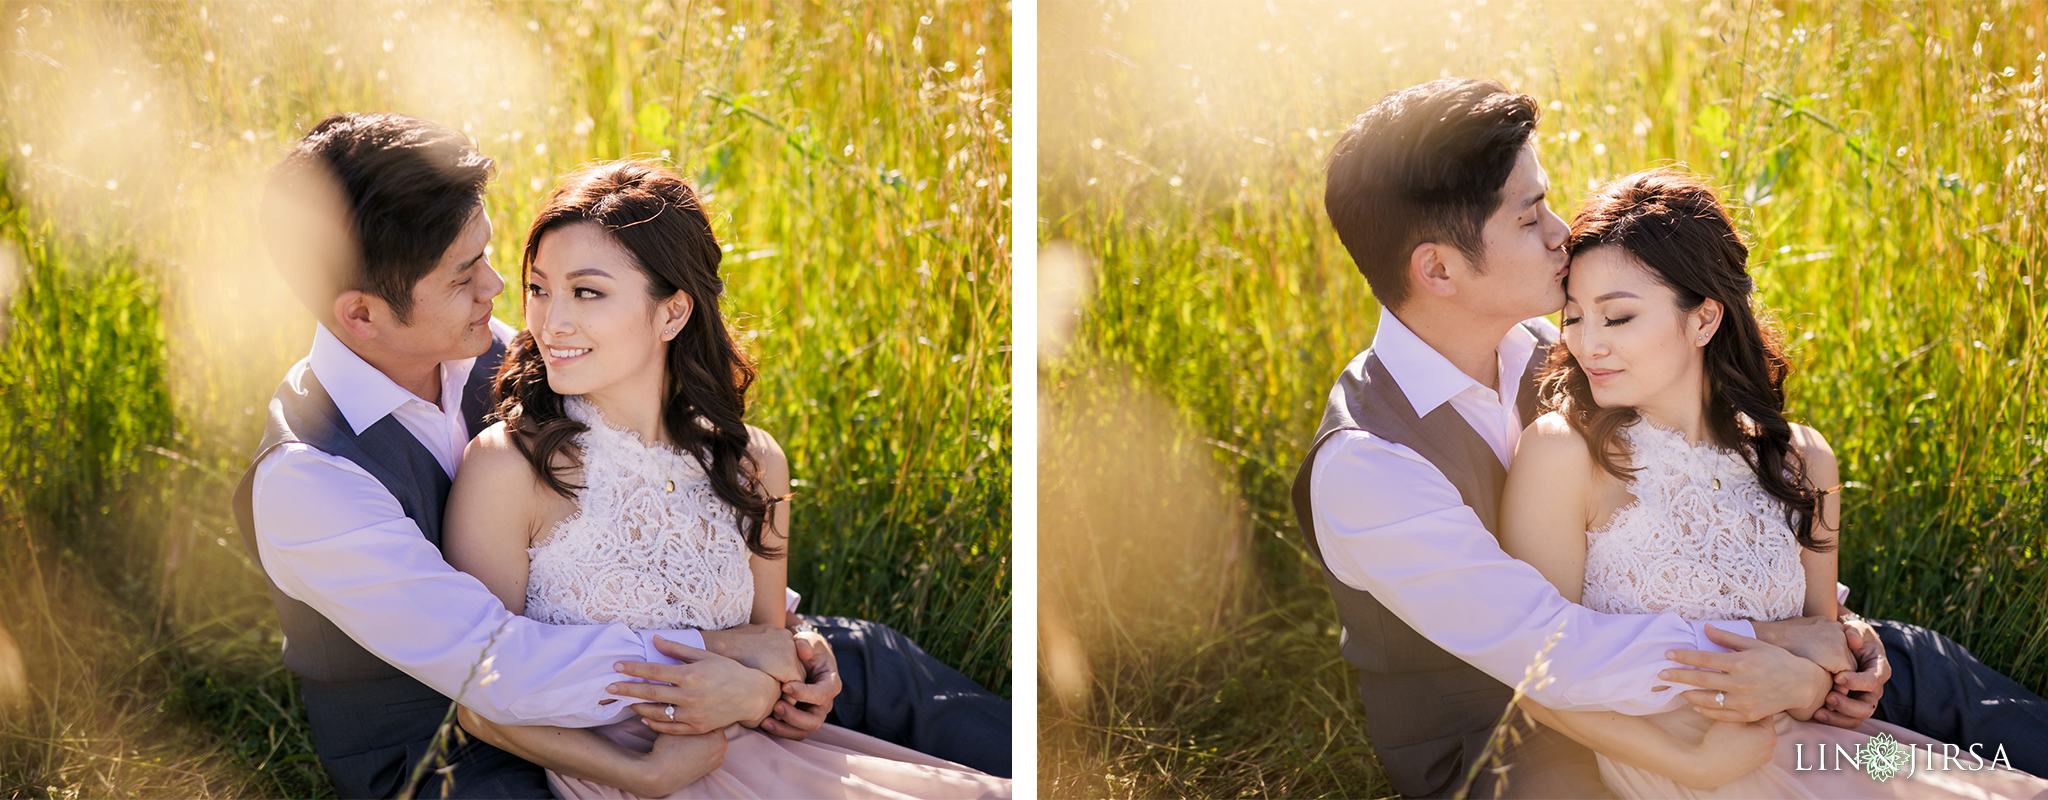 05 Quail Hill Orange County Engagement Photography